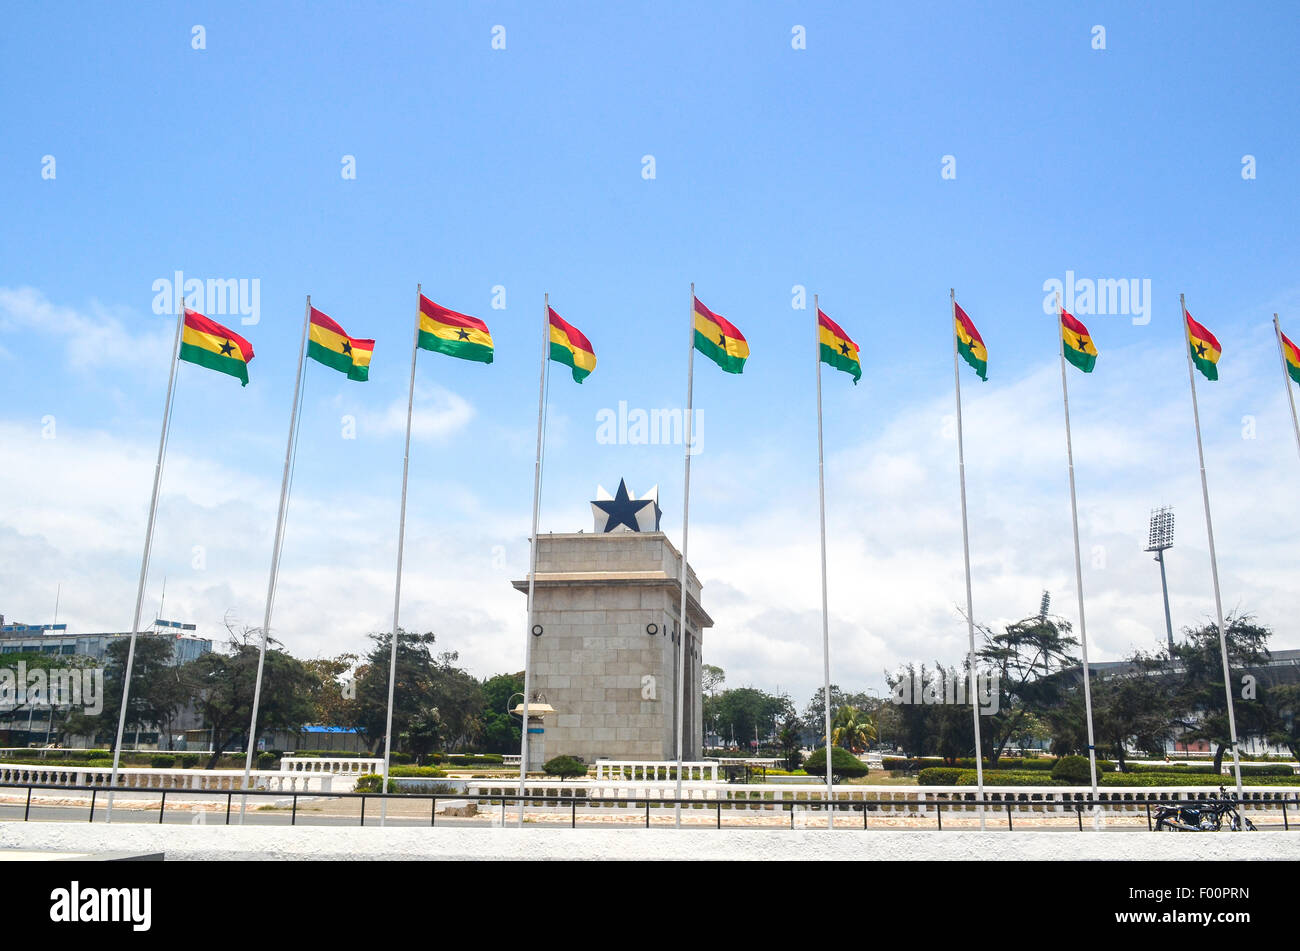 Ghanaian flags at the Independence Square and Black Star Gate in Accra, Ghana - Stock Image